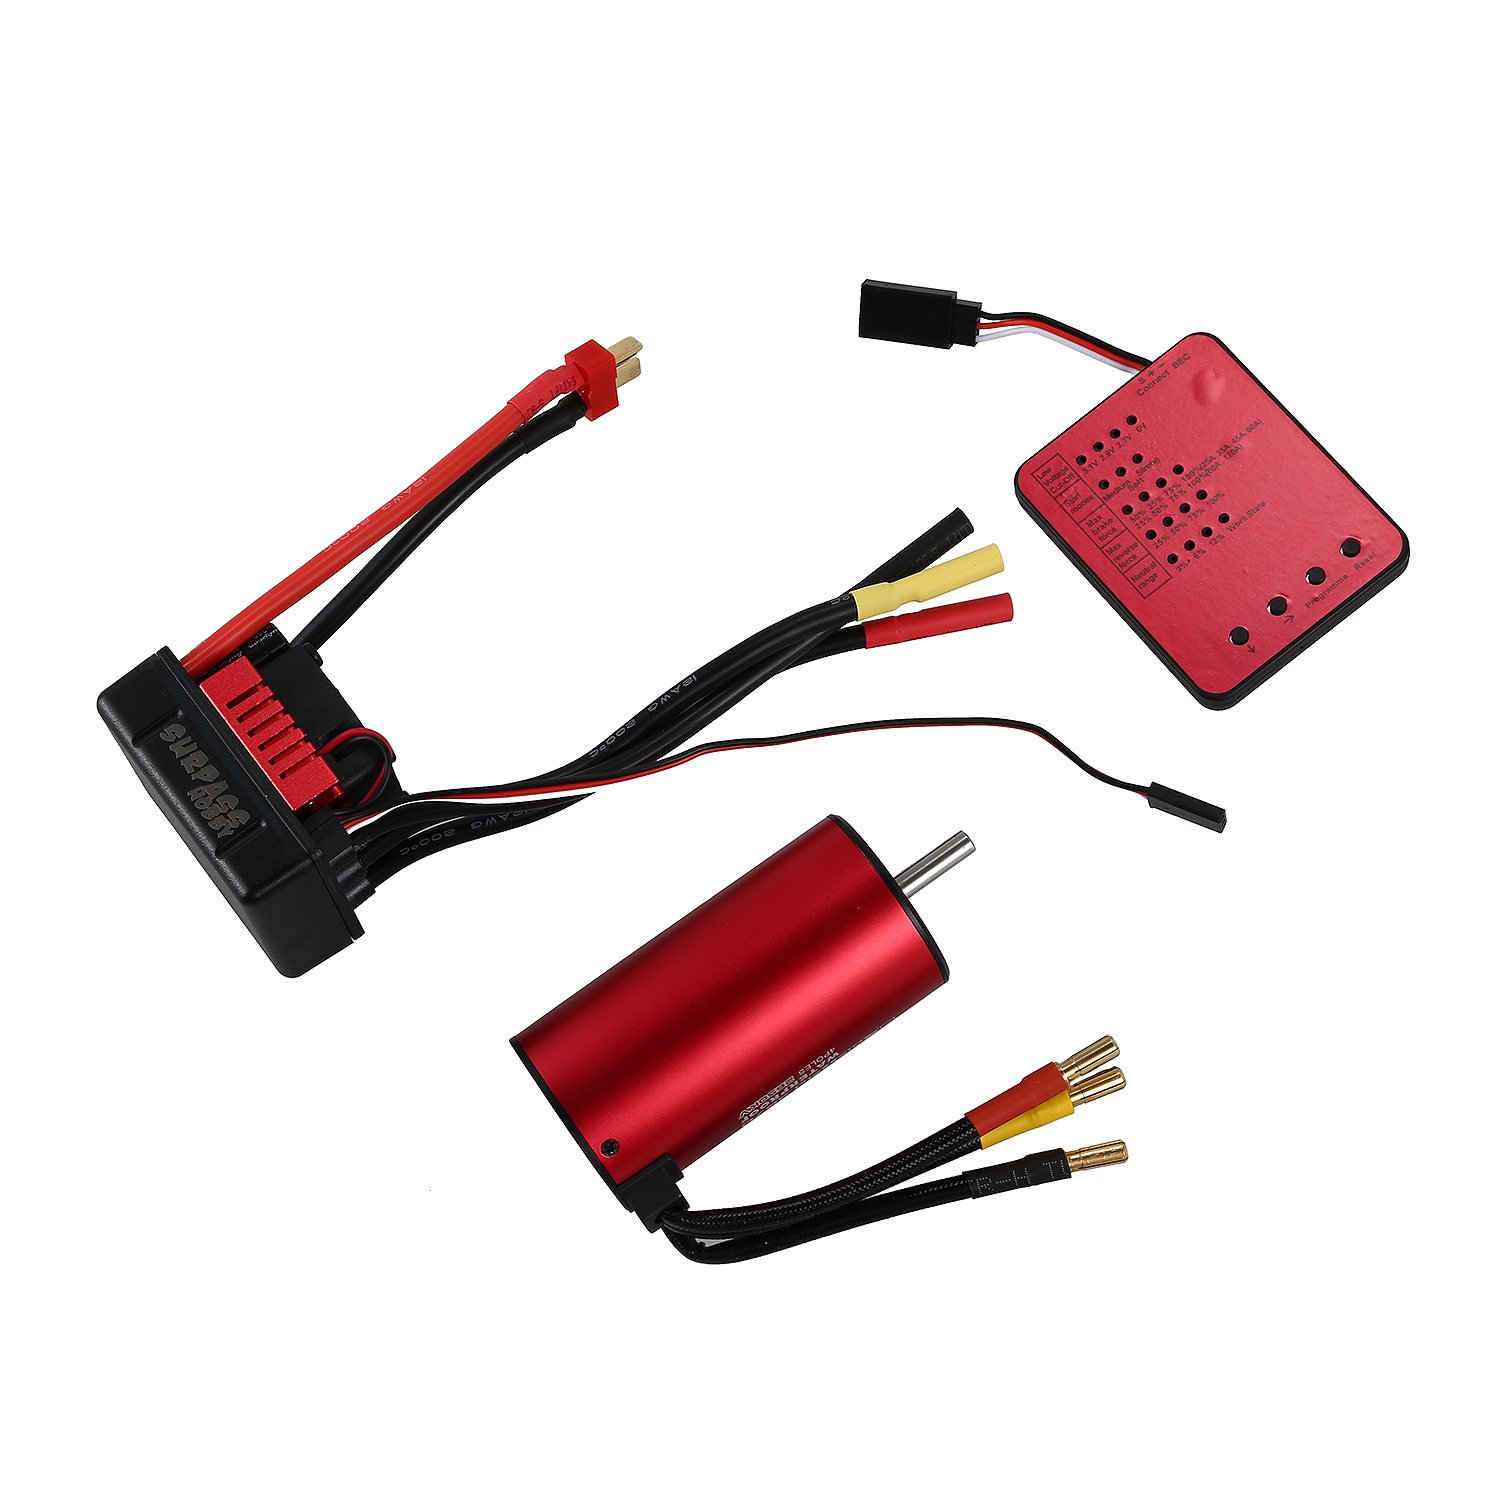 FBIL-SURPASS HOBBY S3670 2650KV Sensorless Brushless Motor 120A Brushless ESC and Program Card Combo Set for 1/8 RC Car Truck original goolrc s3650 3900kv sensorless brushless motor 60a brushless esc and program card combo set for 1 10 rc car truck